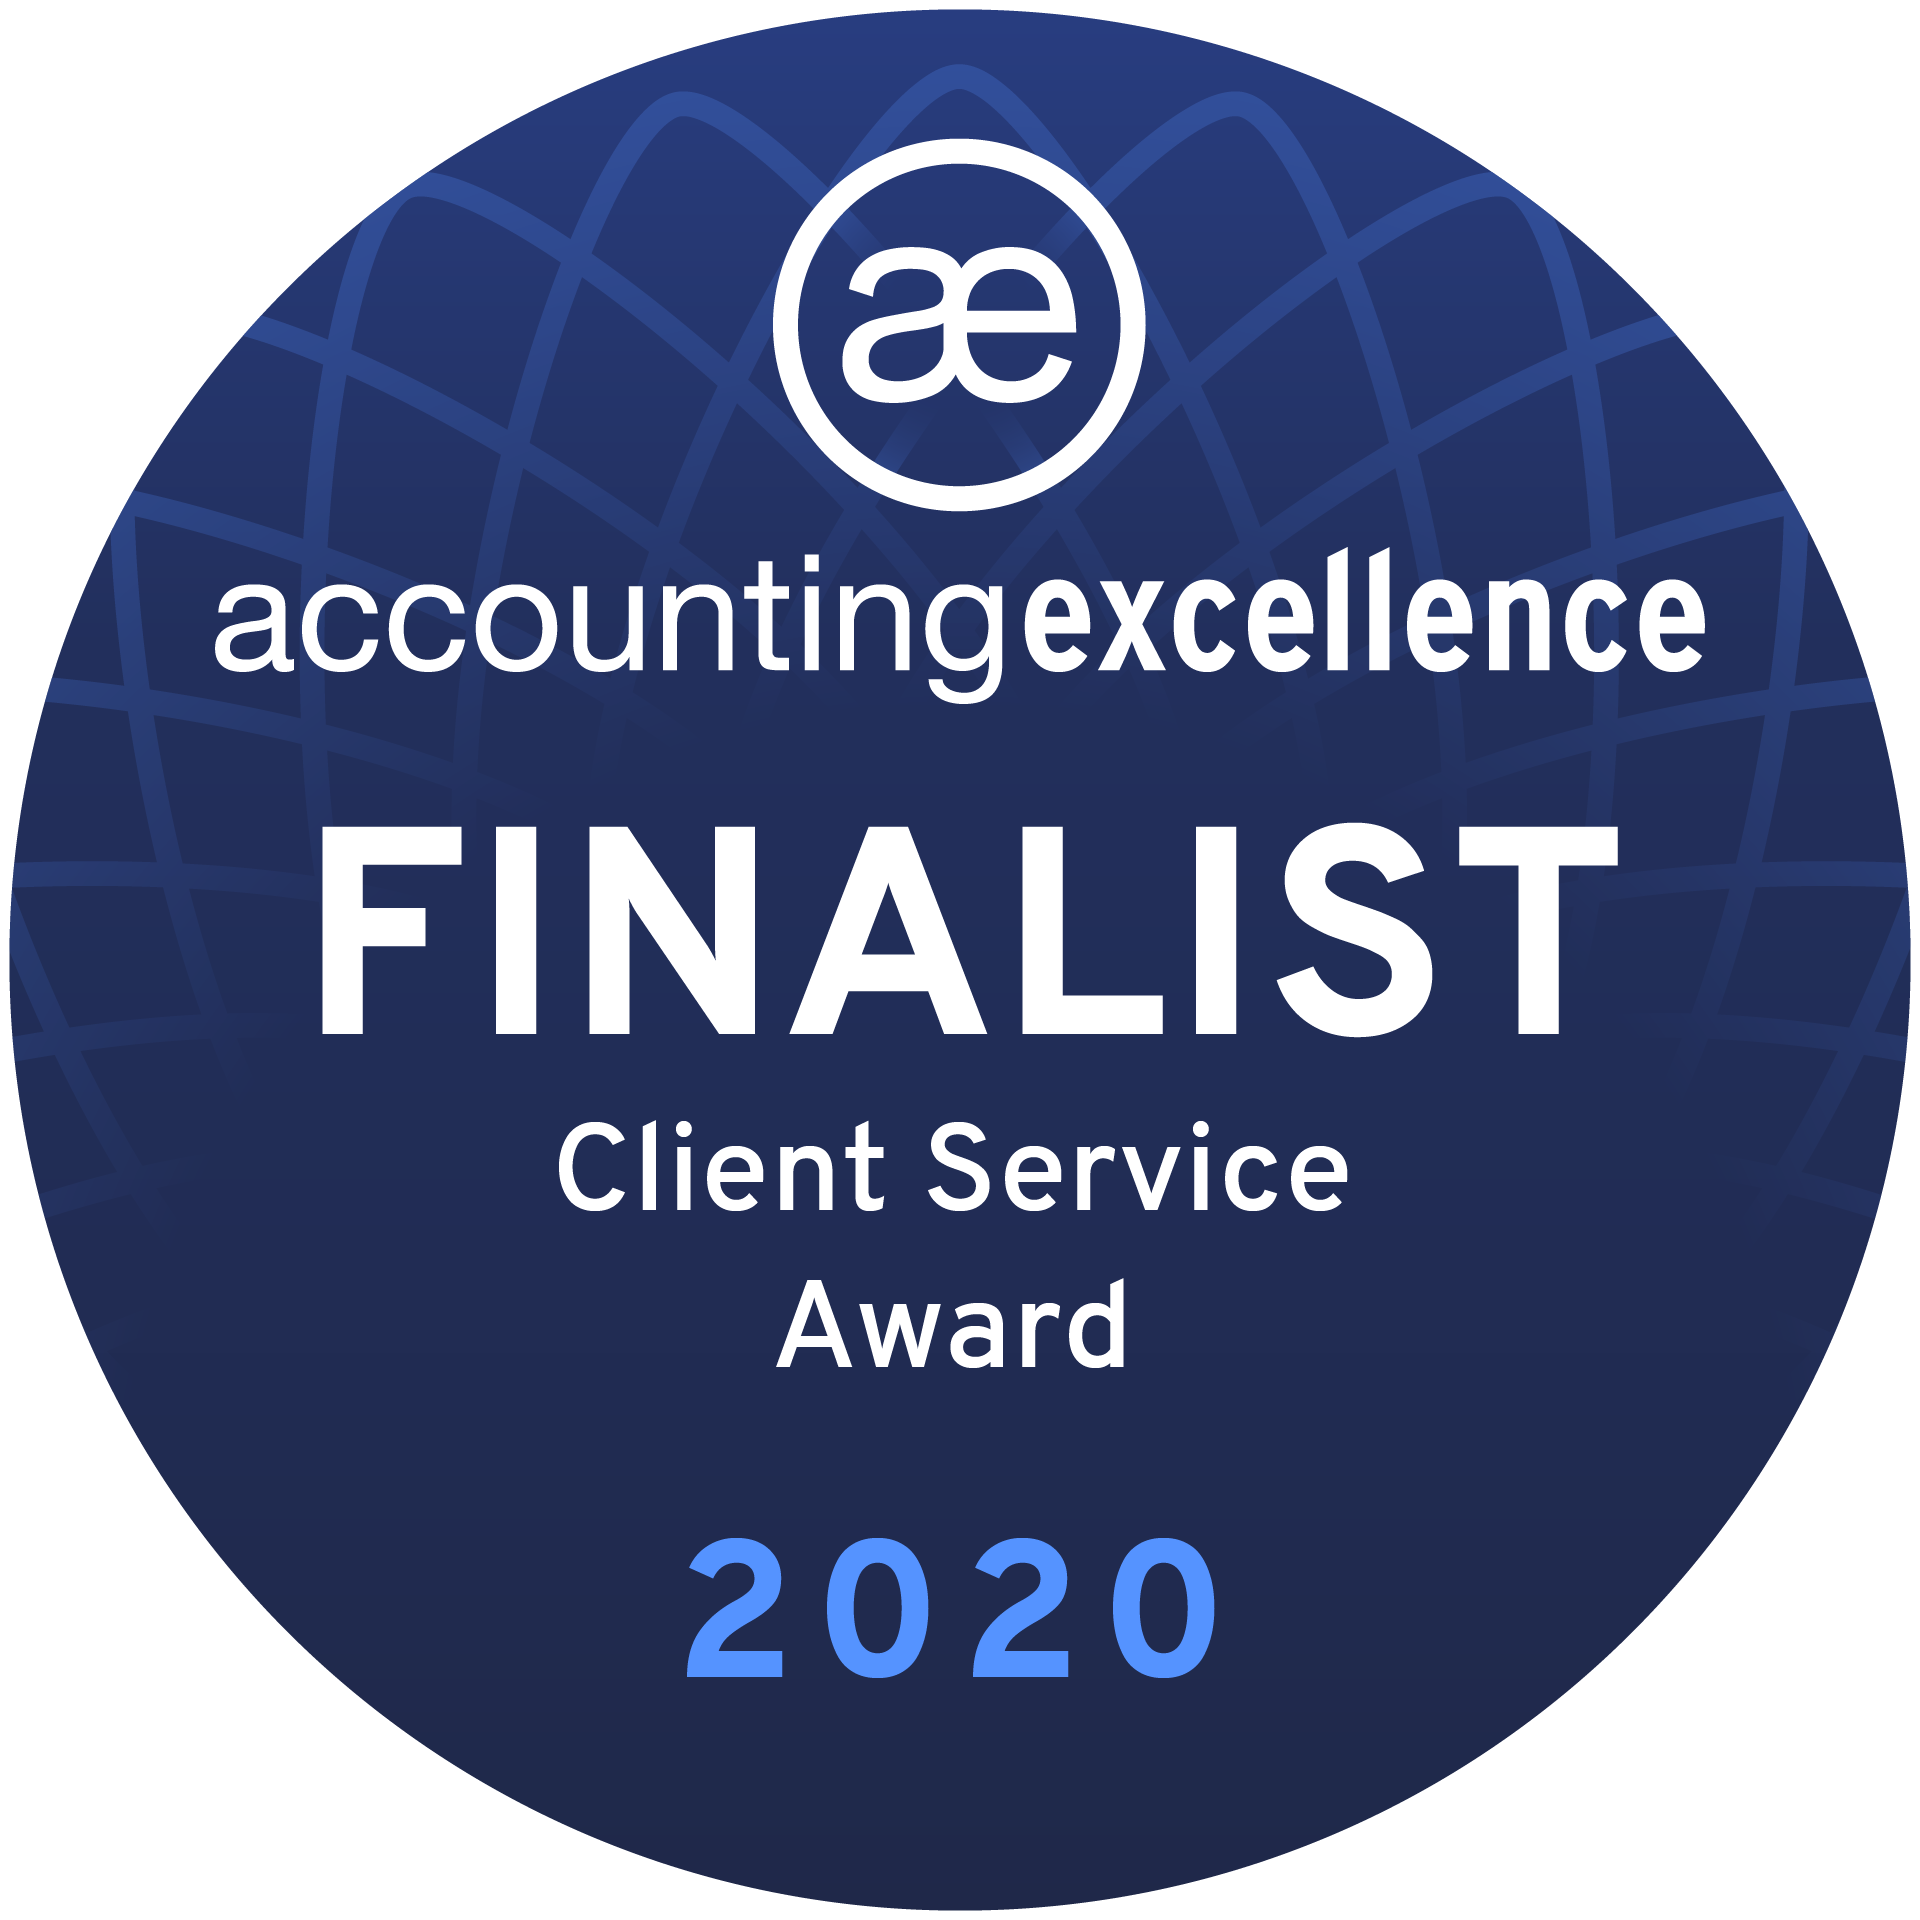 1. Client-Service-Award---Finalist-Badge